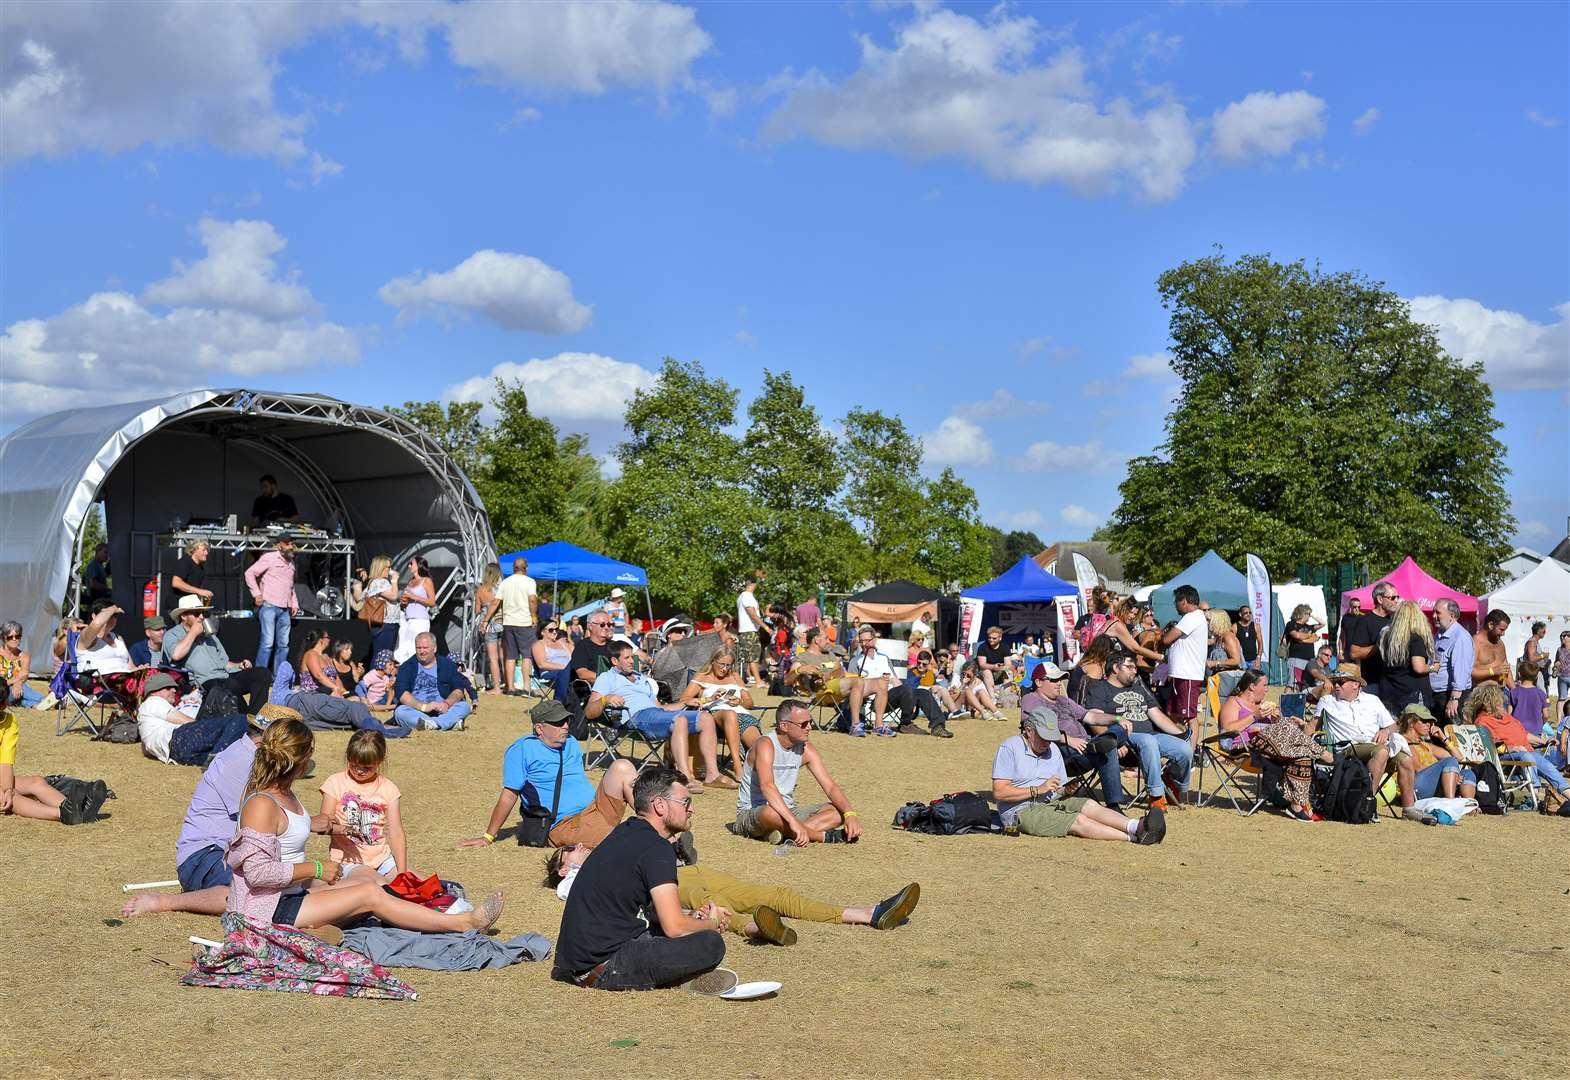 Diss Town Council responds to news Gig in the Park will not be going ahead in 2019